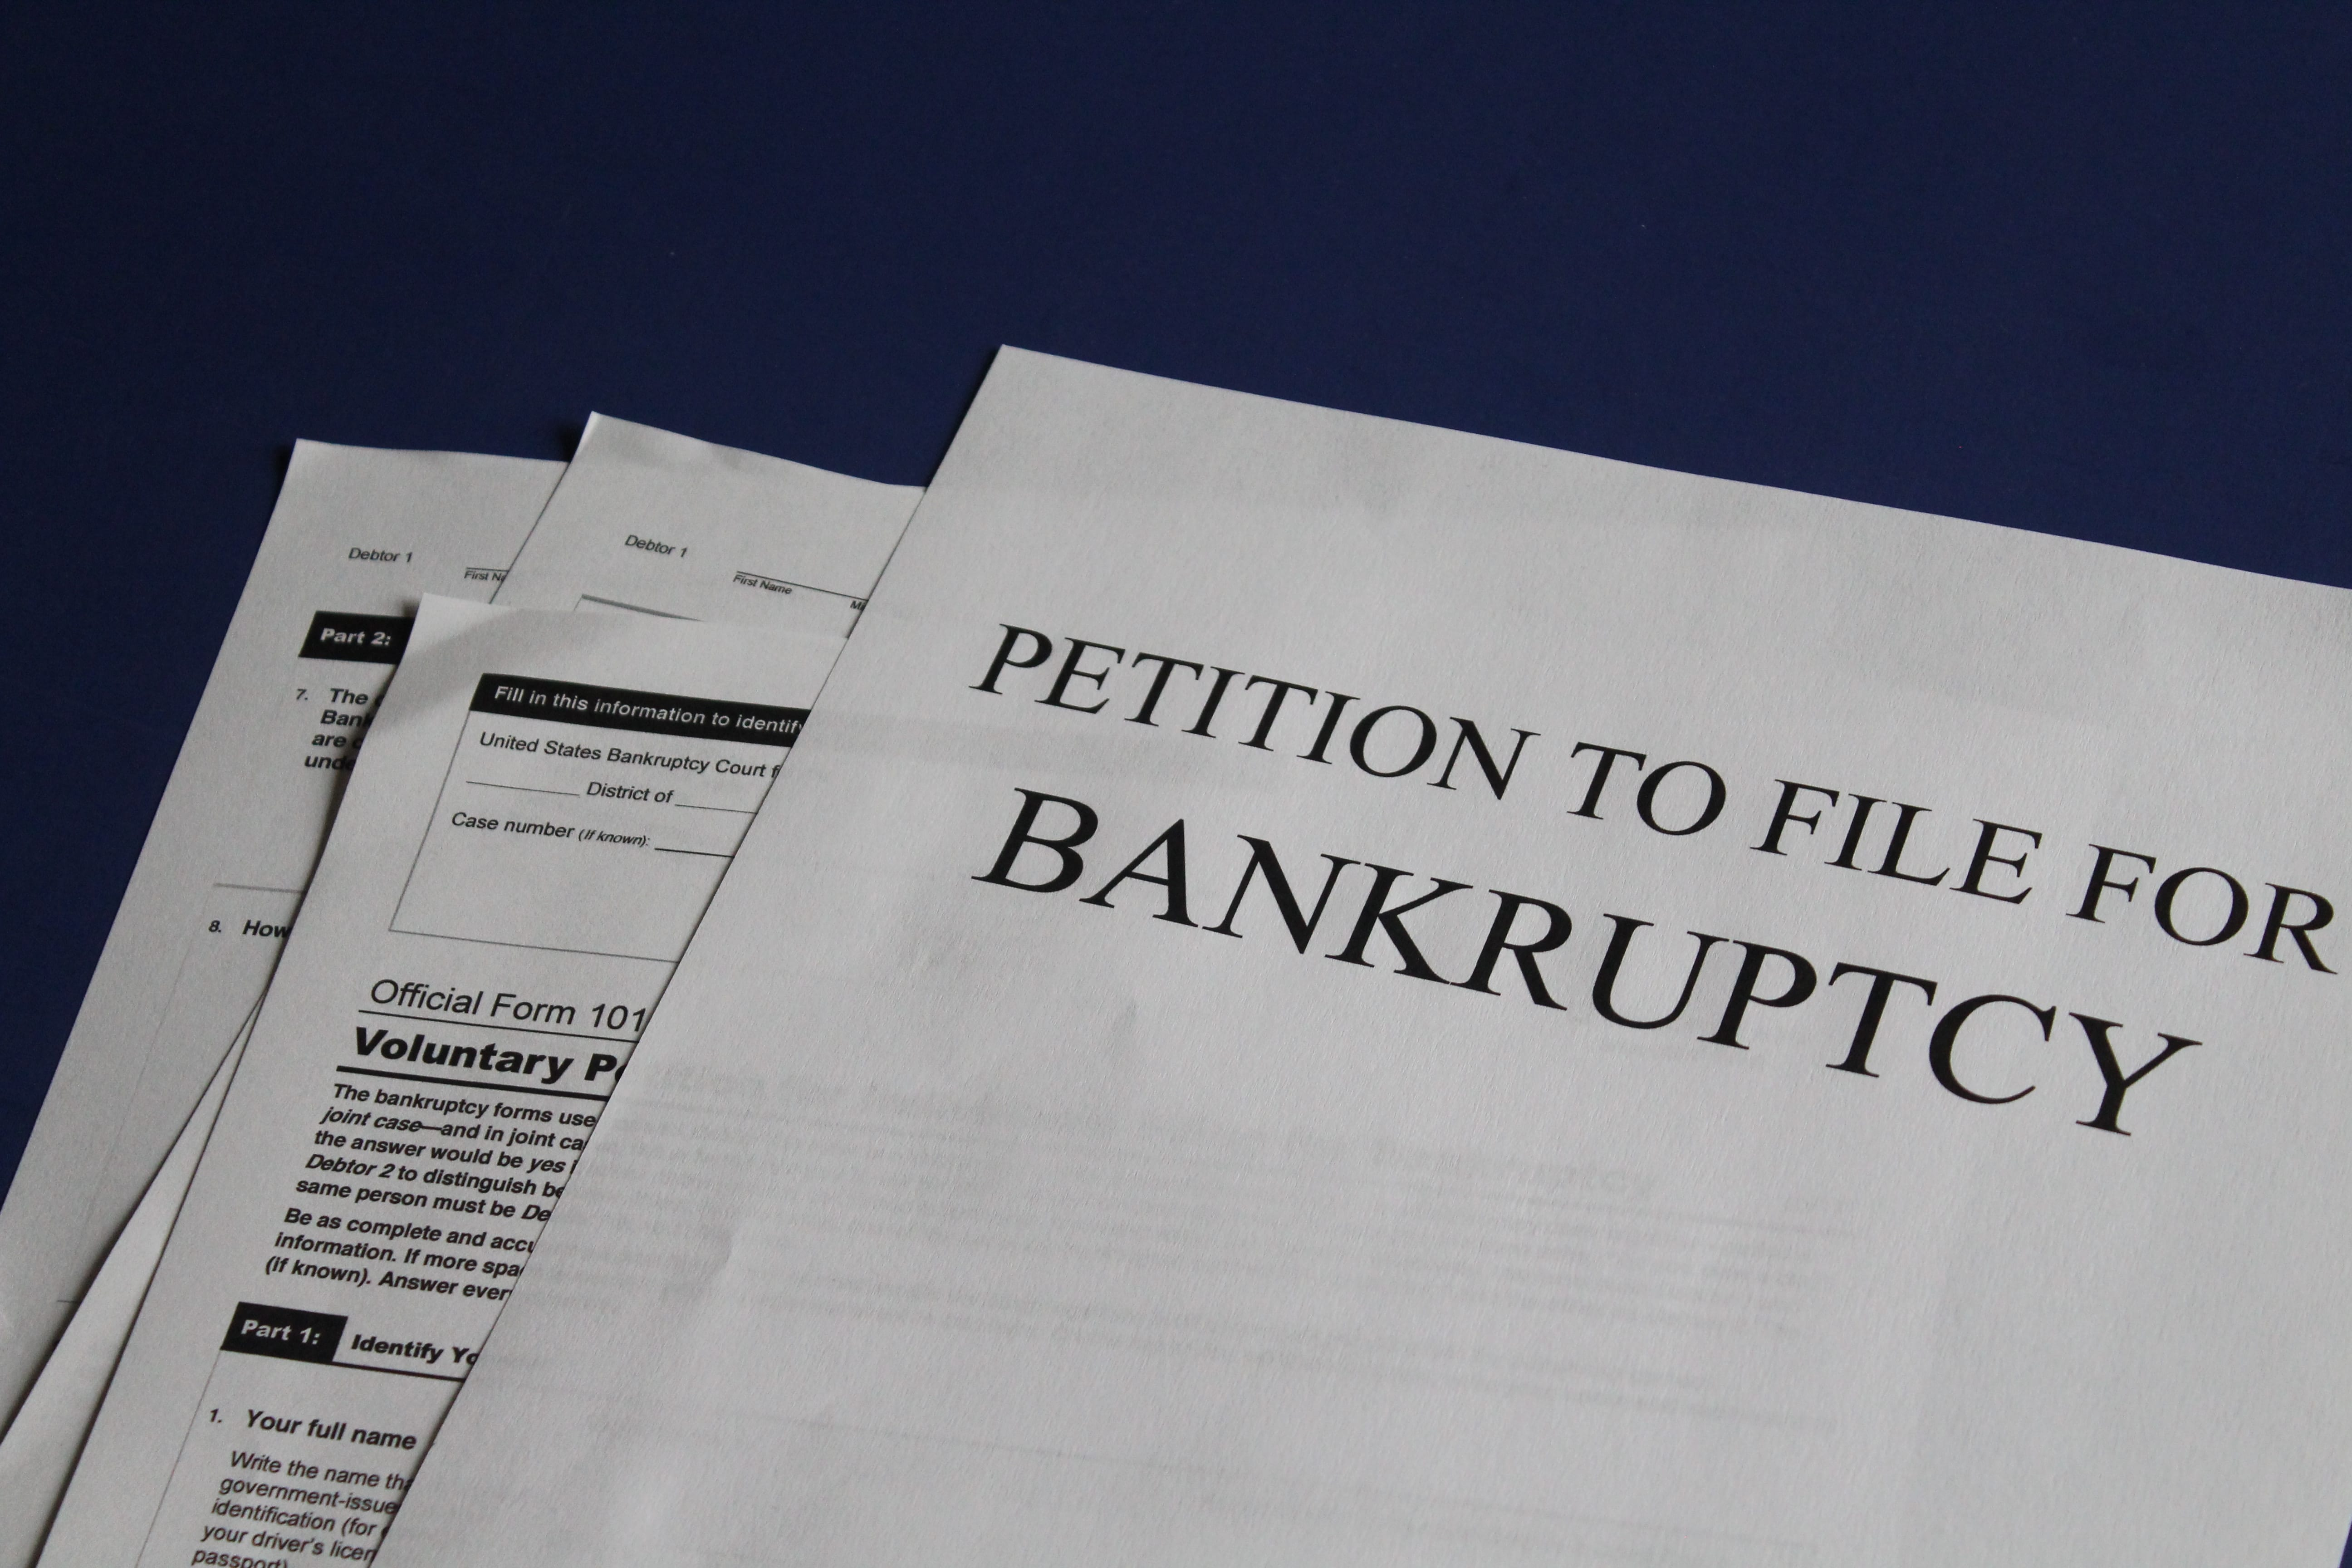 Petition to file bankruptcy paperwork; image by Melinda Gimpel, via Unsplash.com